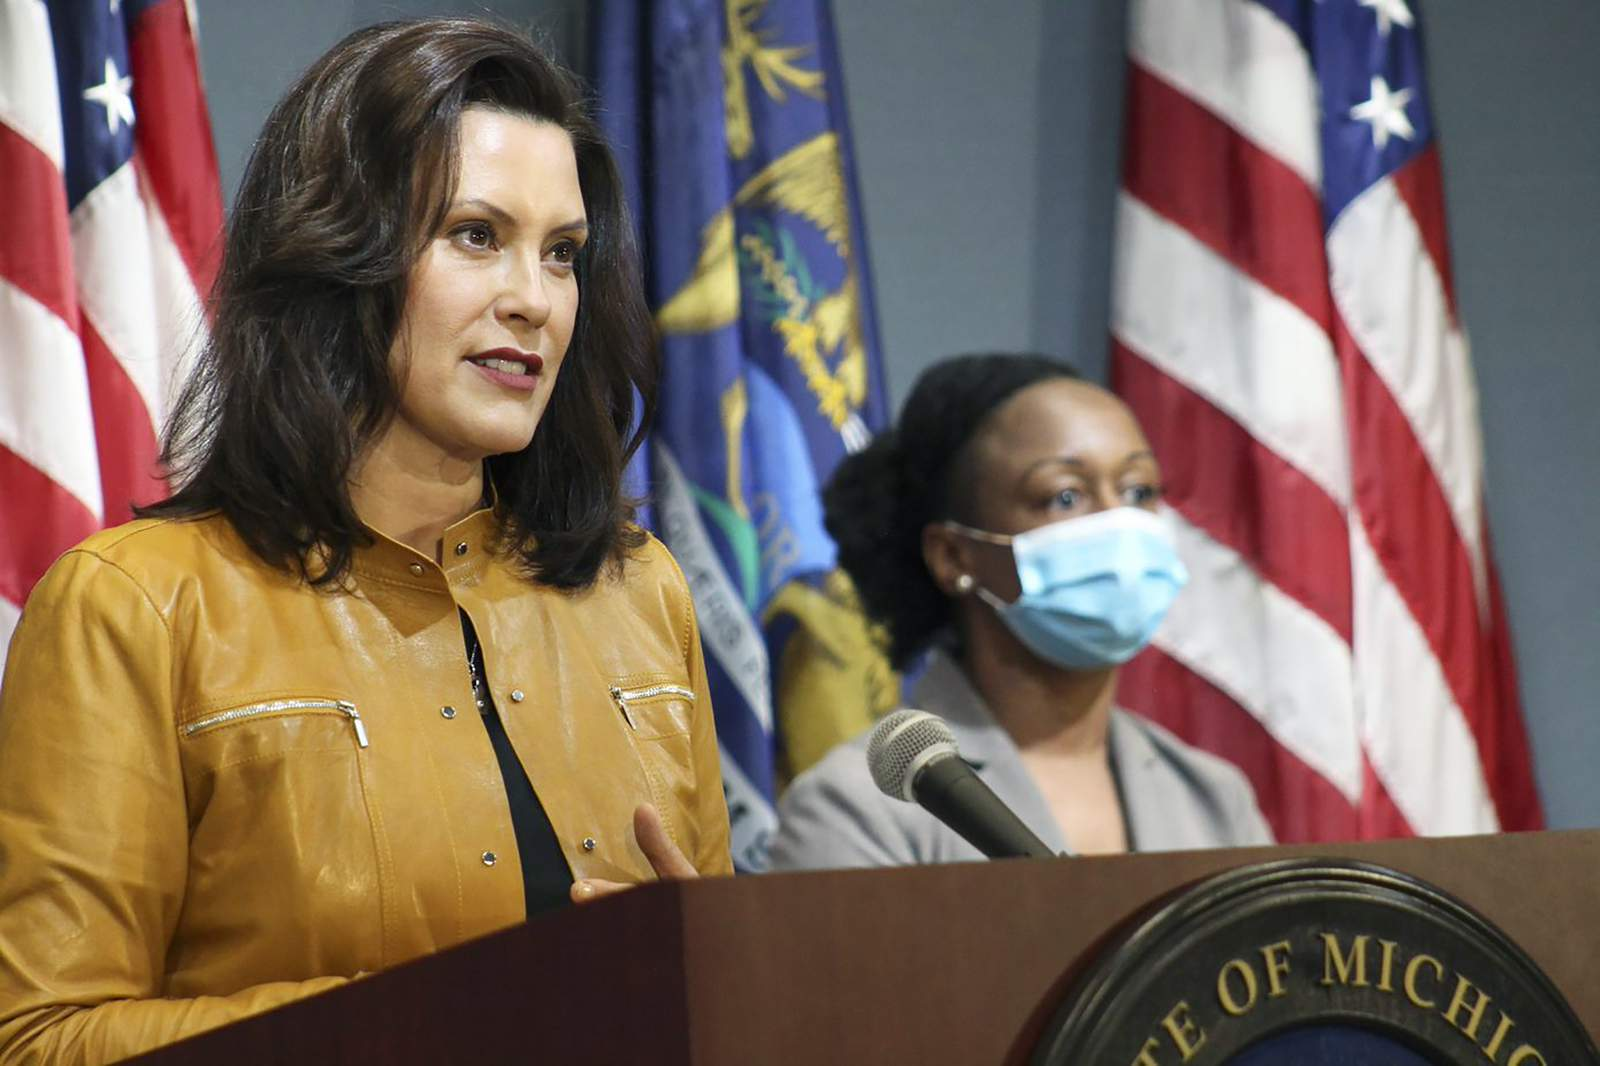 Michigan Gov Whitmer Says Strong Covid 19 Actions Have Paid Off But Will Take Economic Toll